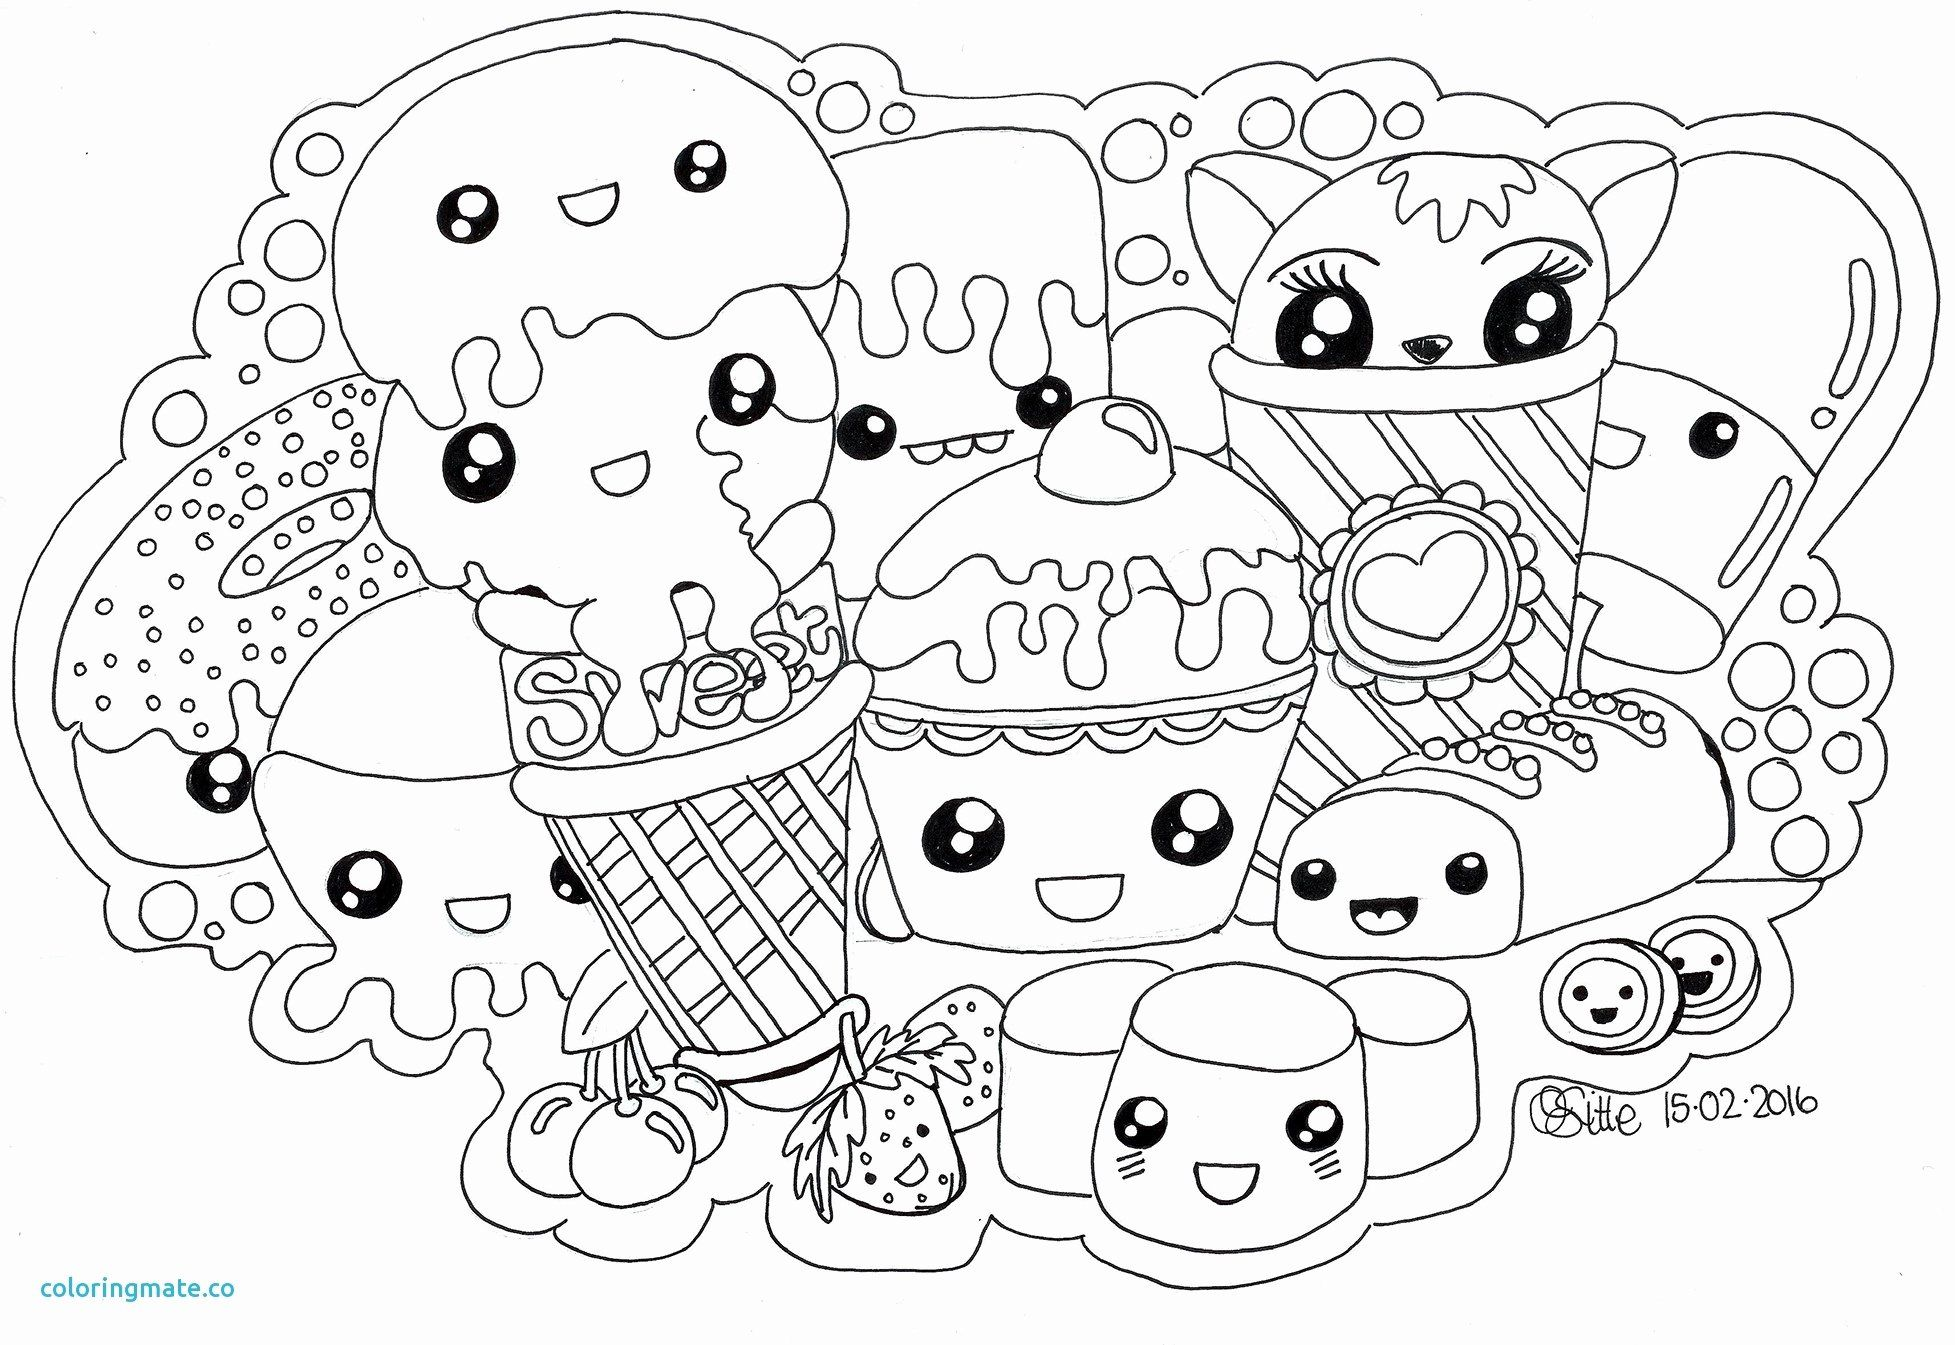 Kawaii Coloring Pages Printable Best Of Kawaii Food Coloring Pages Download In 2020 Unicorn Coloring Pages Food Coloring Pages Fruit Coloring Pages